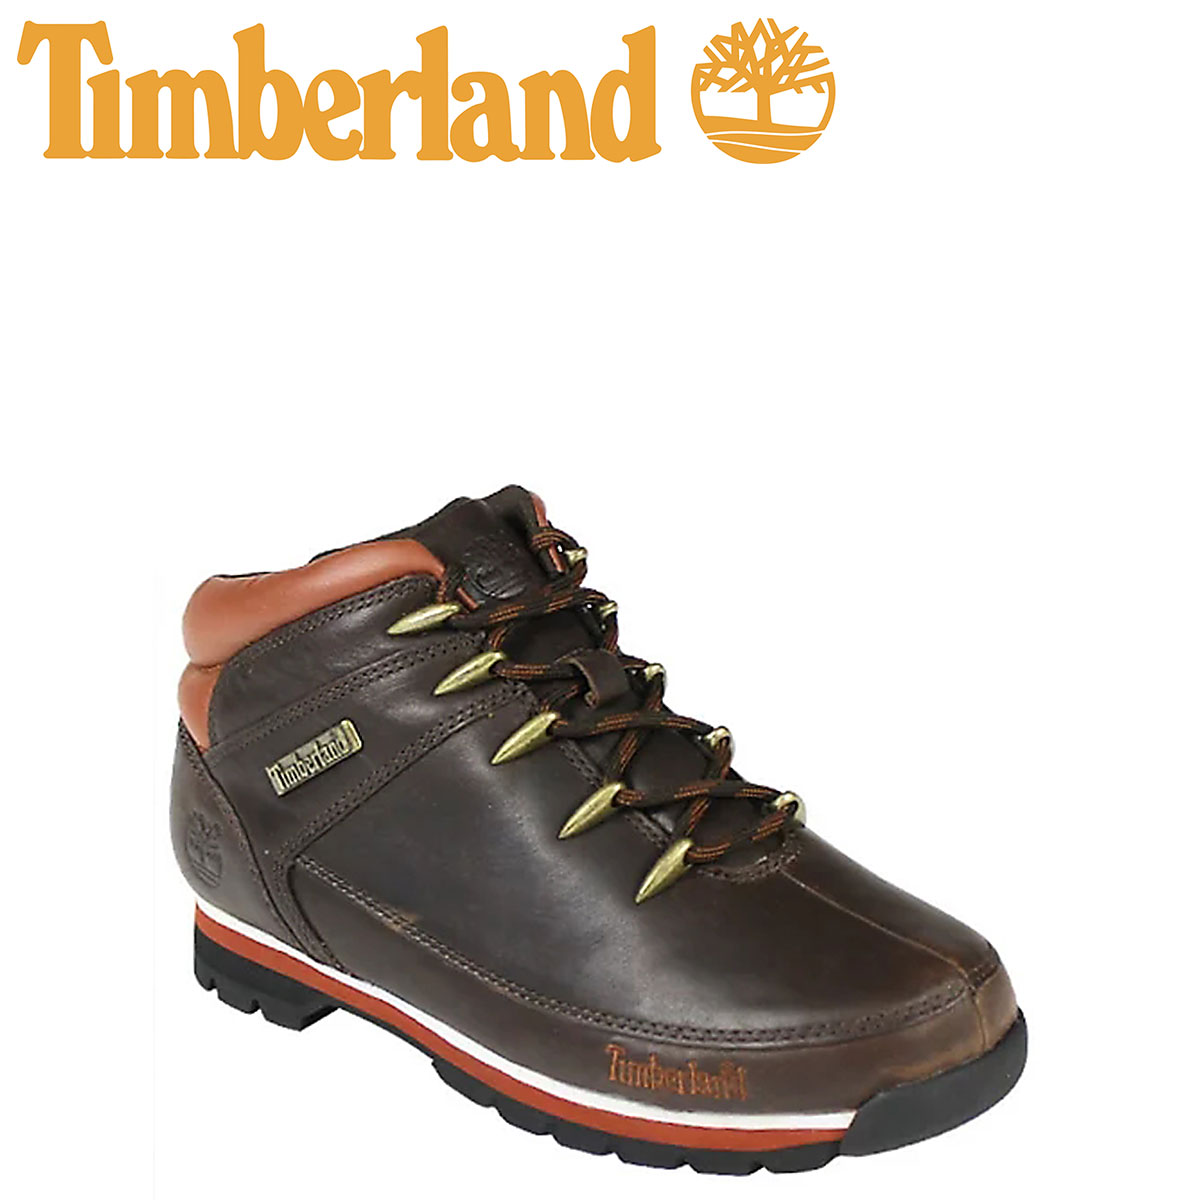 Timberland Timberland boots EURO SPRINT 2 HIKER BOOT 6831R W Wise men